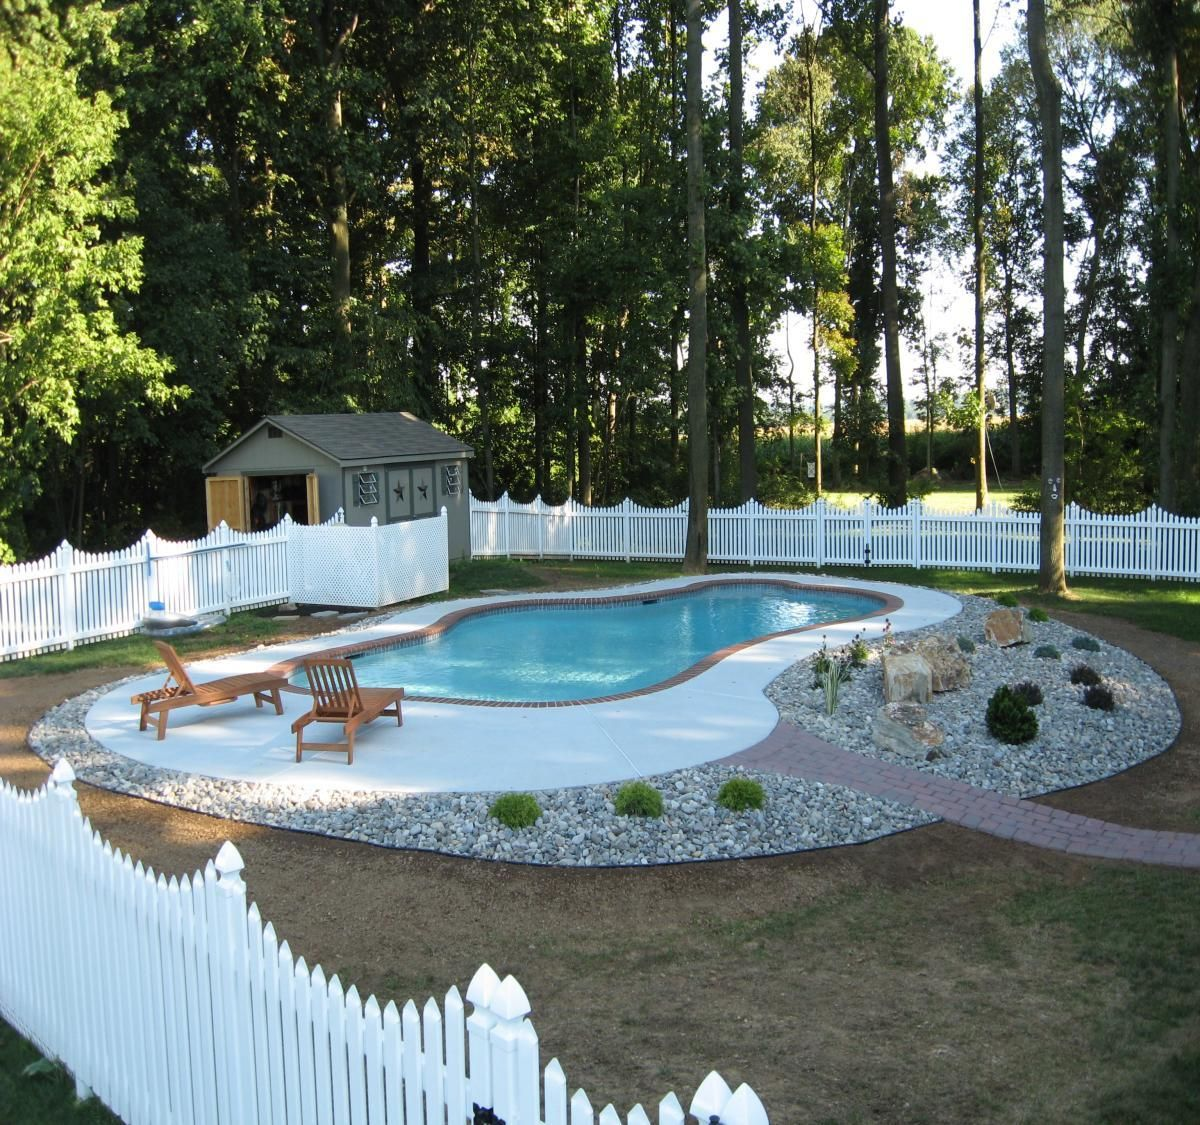 Low Maintenance Decorative Pool Design Landscaping Pinterest Pool Designs Low Maintenance